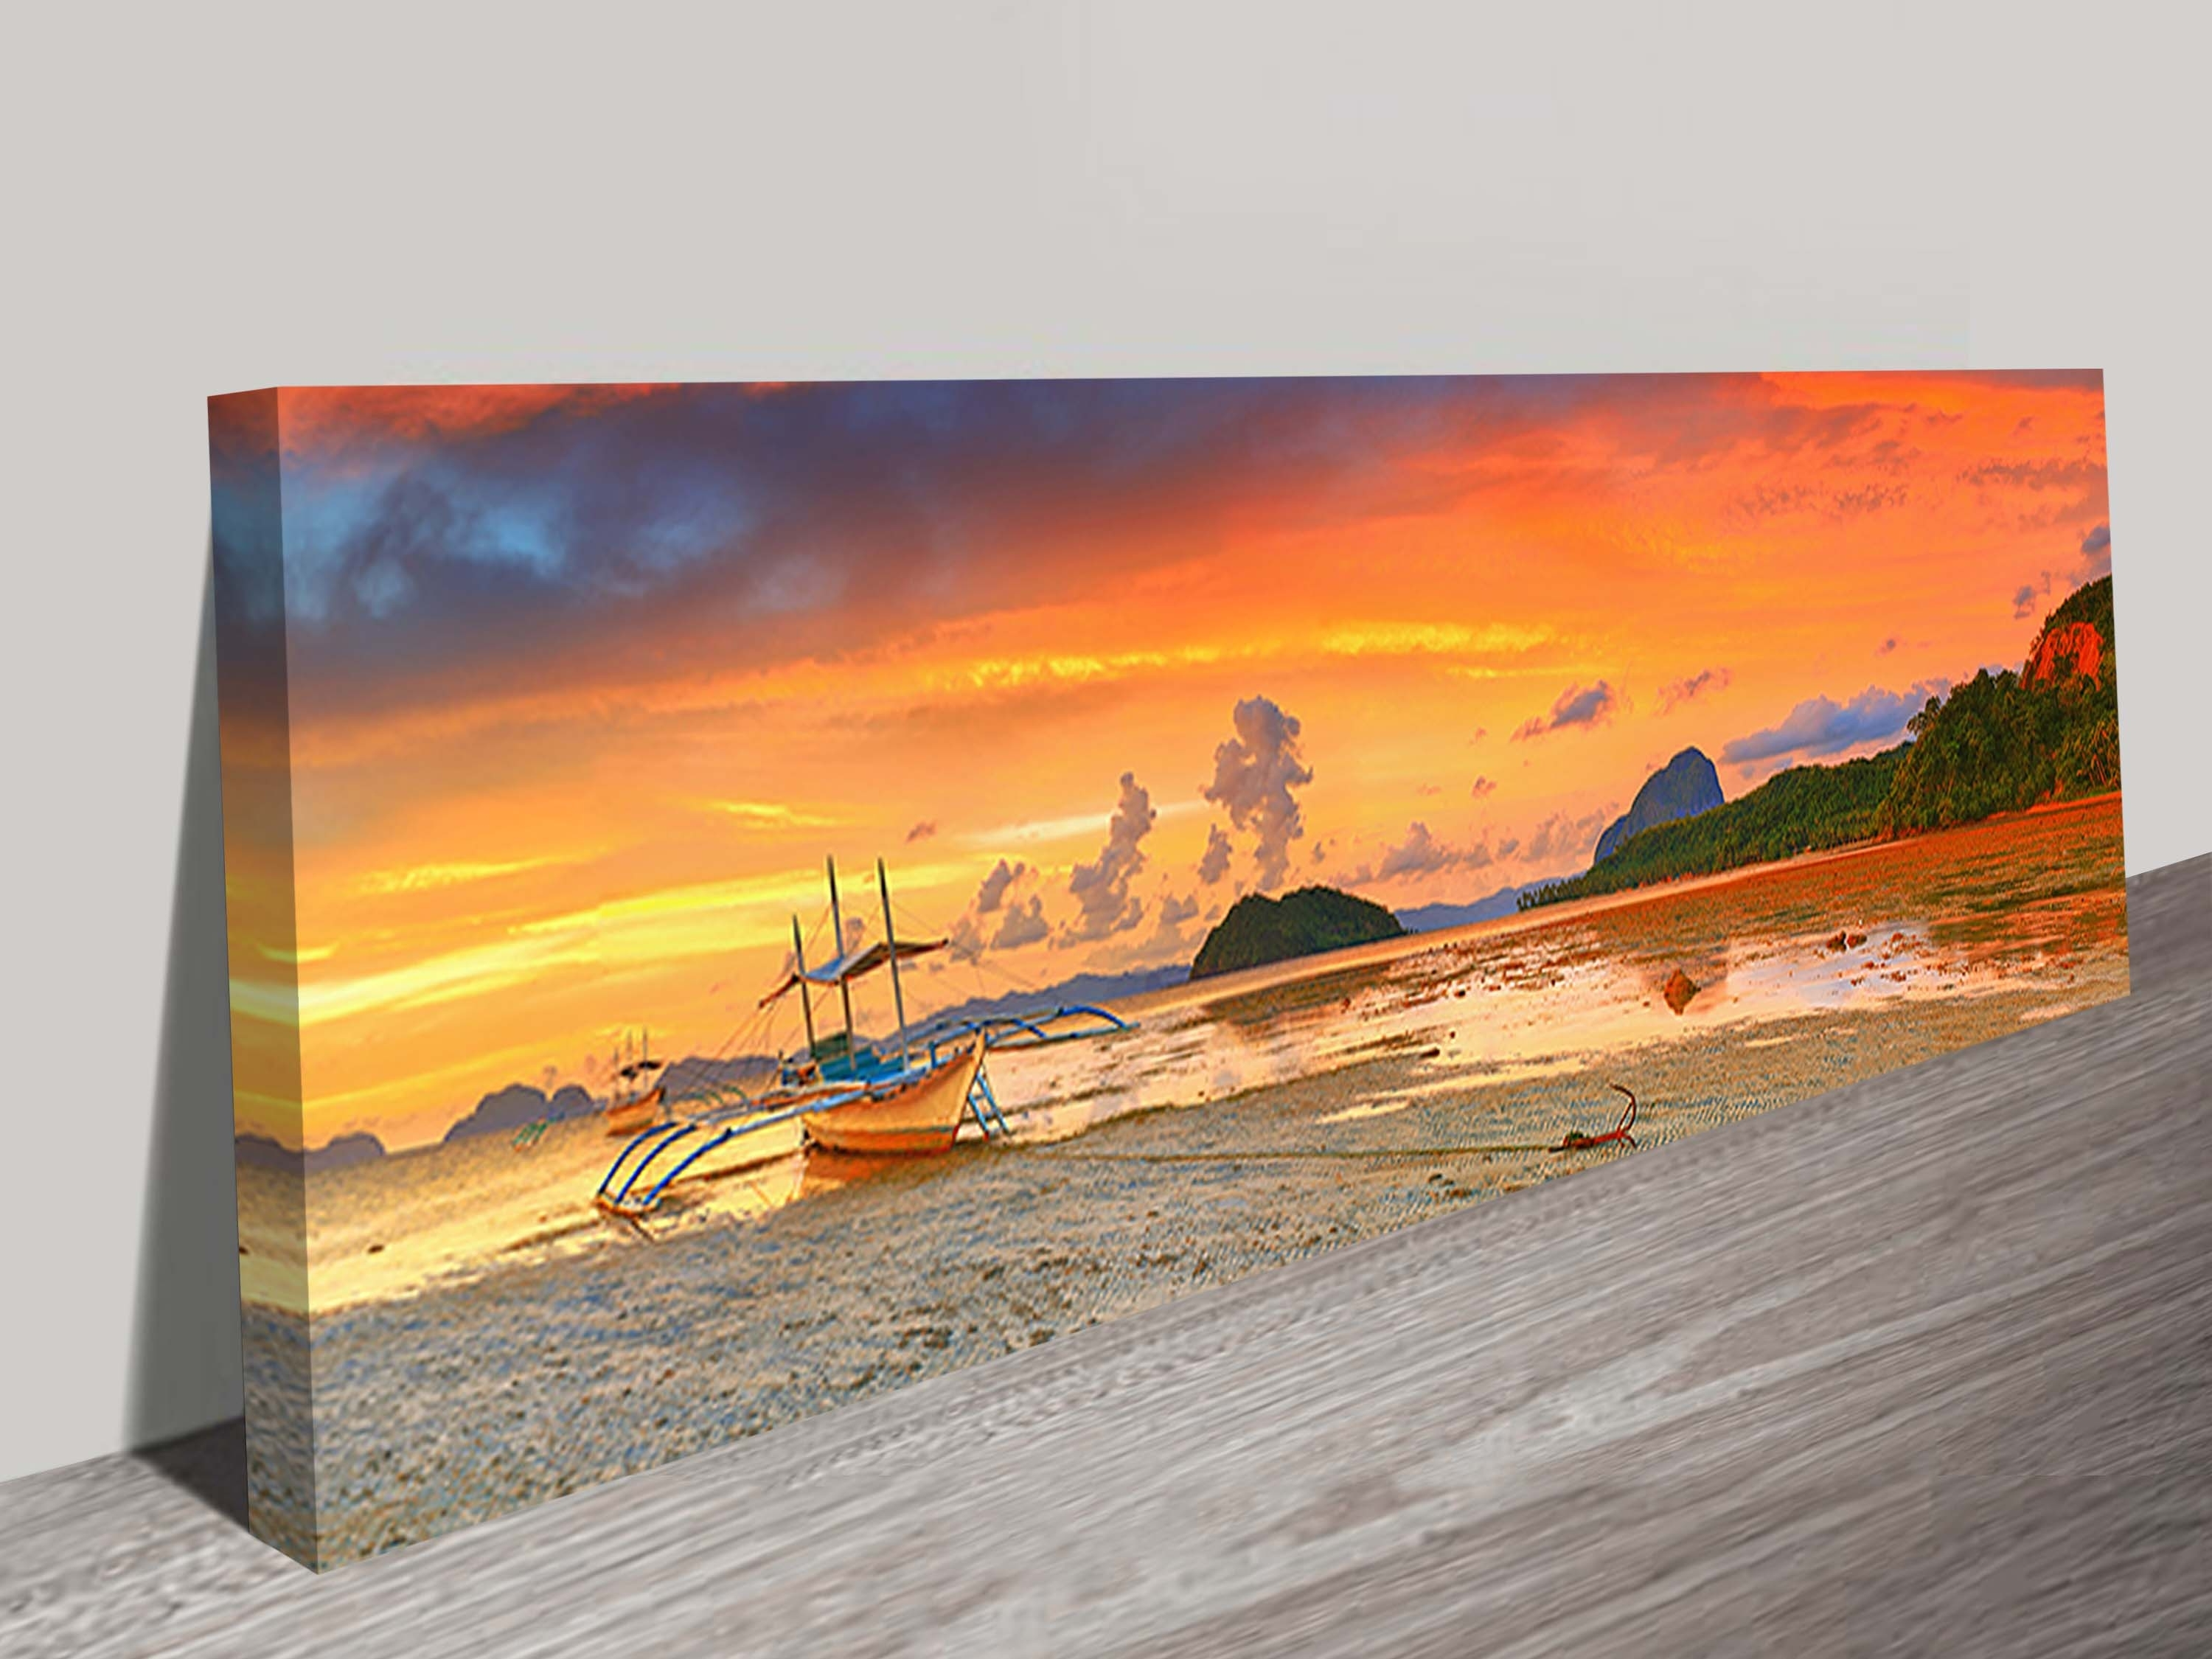 Beaches Archives – Blue Horizon Prints Regarding Most Popular Canvas Wall Art Of Philippines (View 4 of 15)